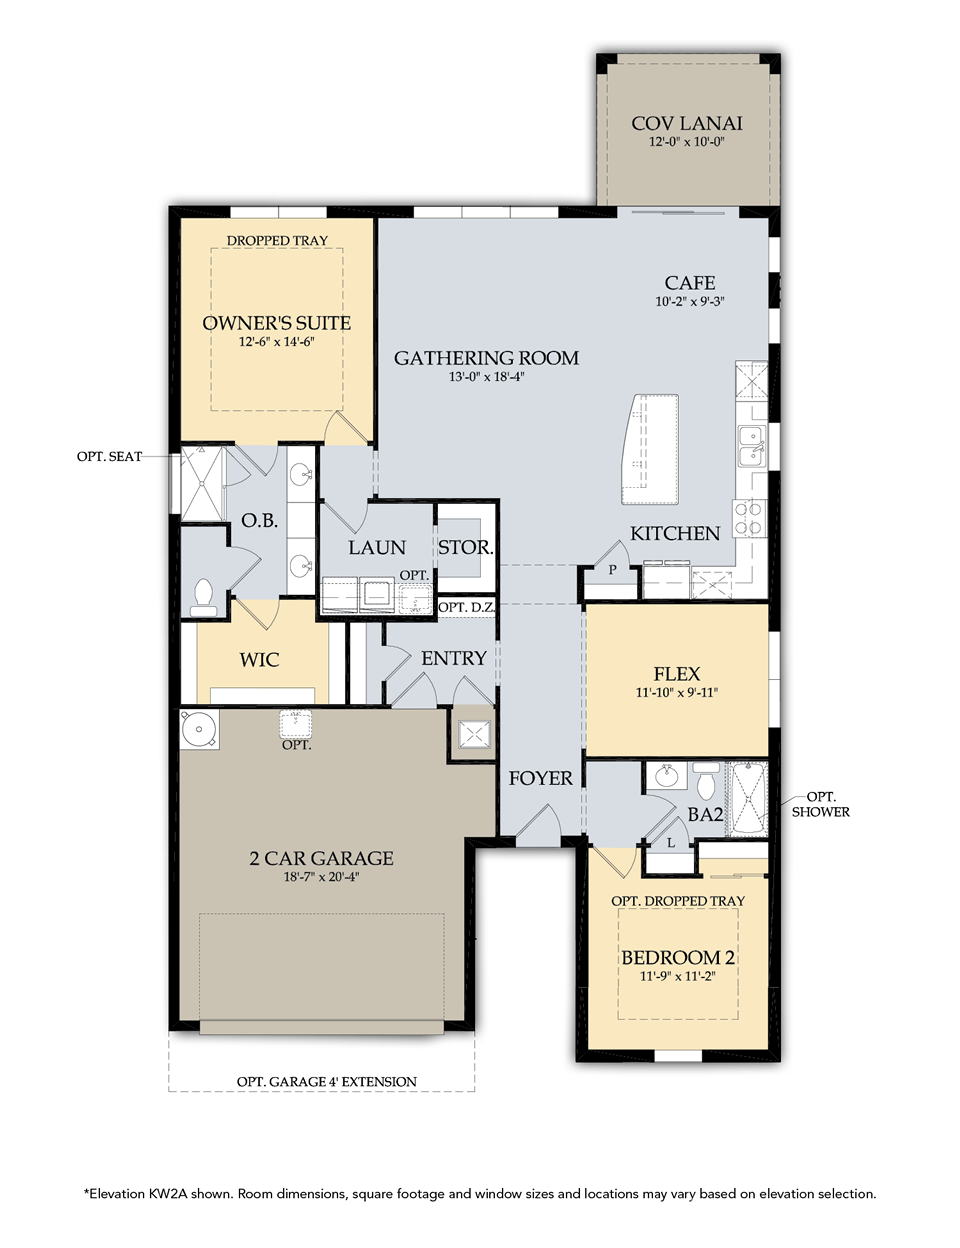 Abbeyville Floor Plan in Tidewater, Estero by Del Webb, 1,659-2,390 Square Feet, 2-4 Bedrooms / 2-3 Bathrooms, 1 Story Home